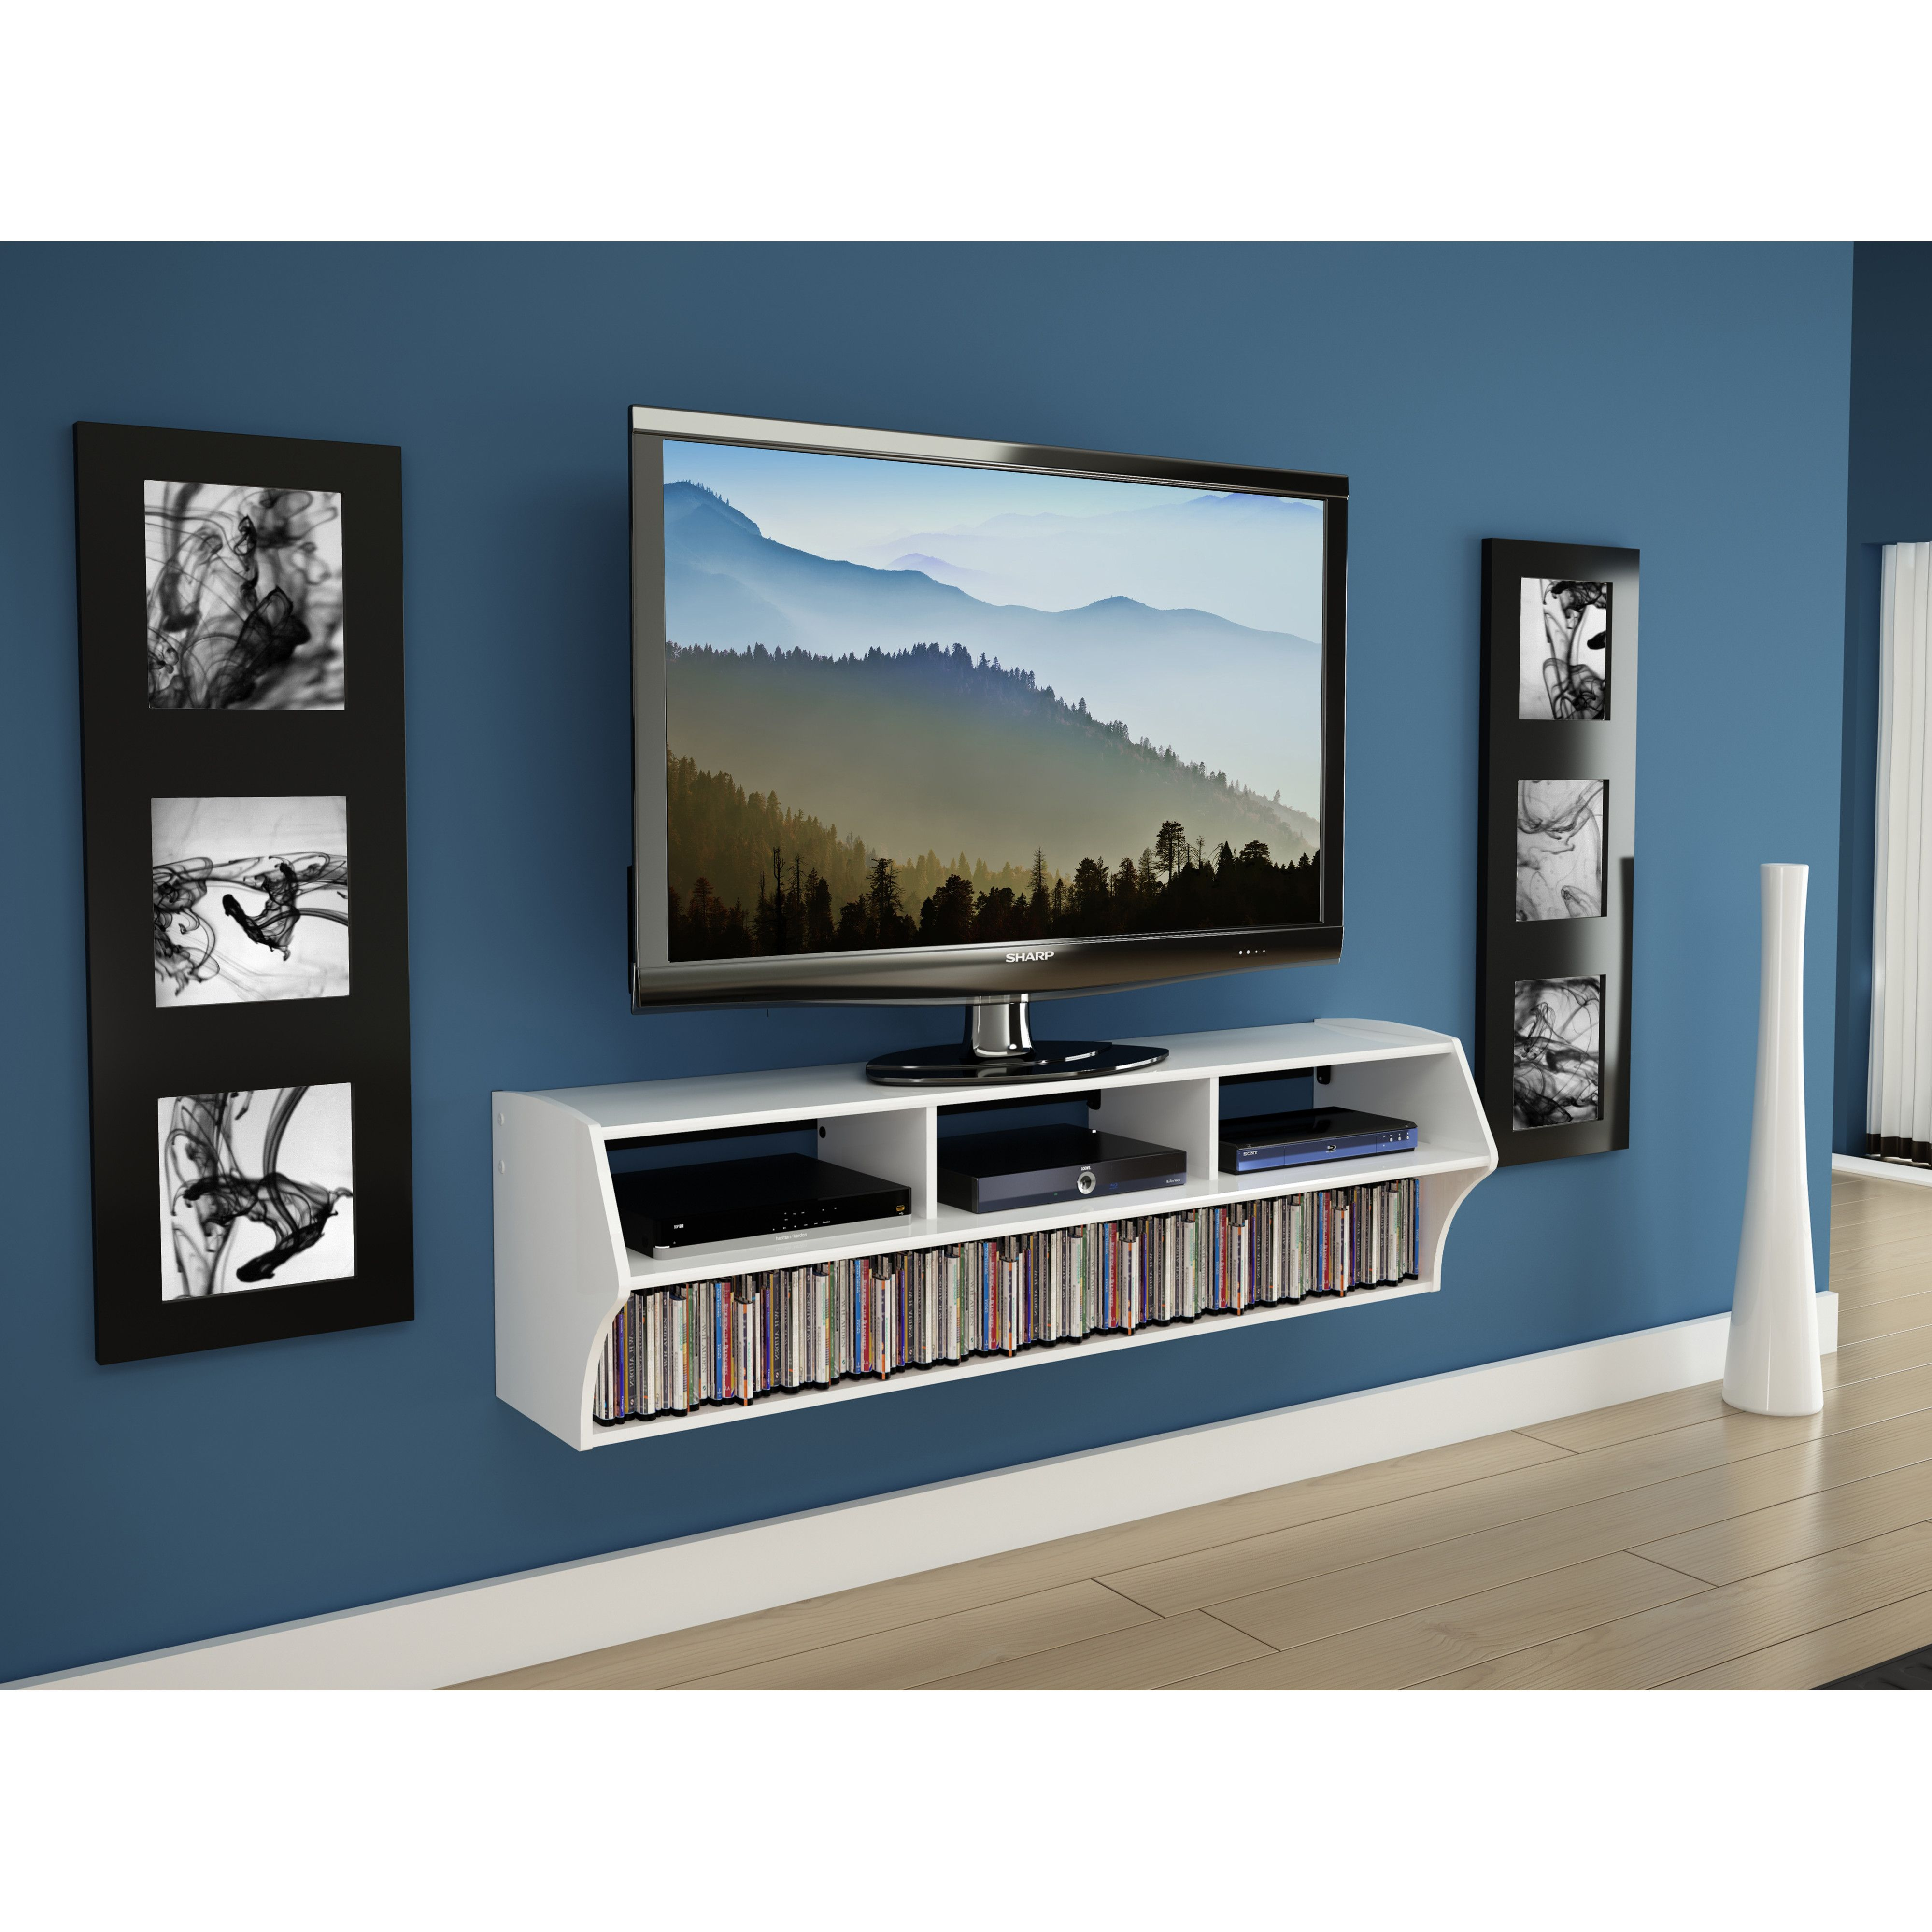 Prepac altus wall mounted tv stand pinteres prepac altus wall mounted tv stand more amipublicfo Image collections